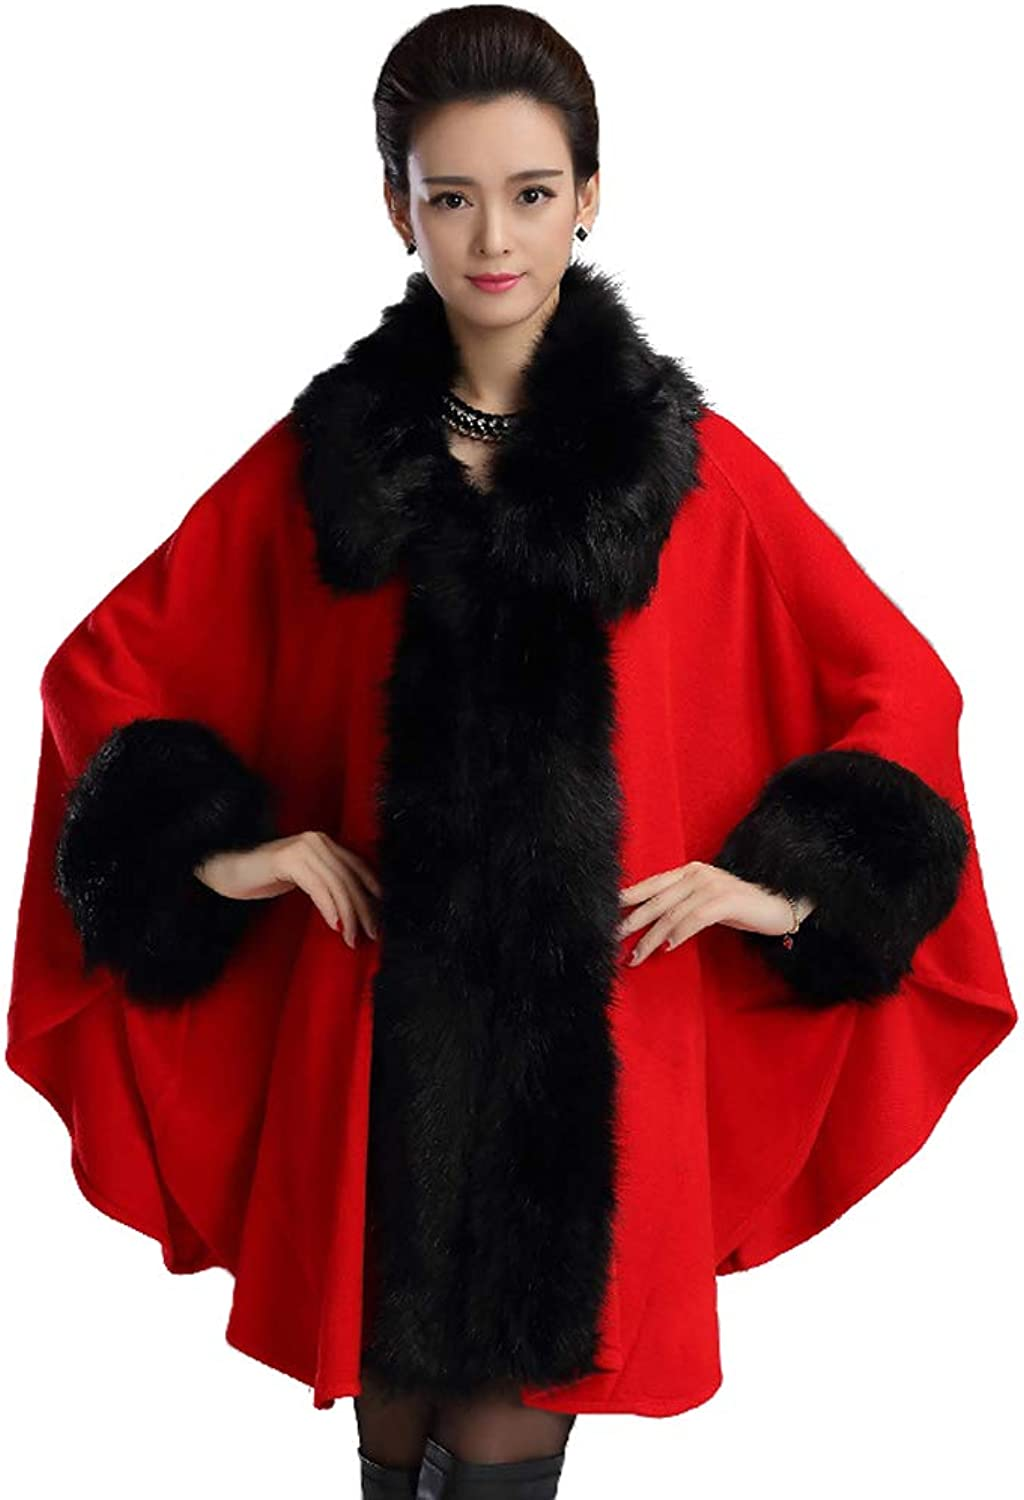 Fenghuavip Lapel Pashmina Shawls and Wraps Faux Fur Wedding Cloak for Bridals